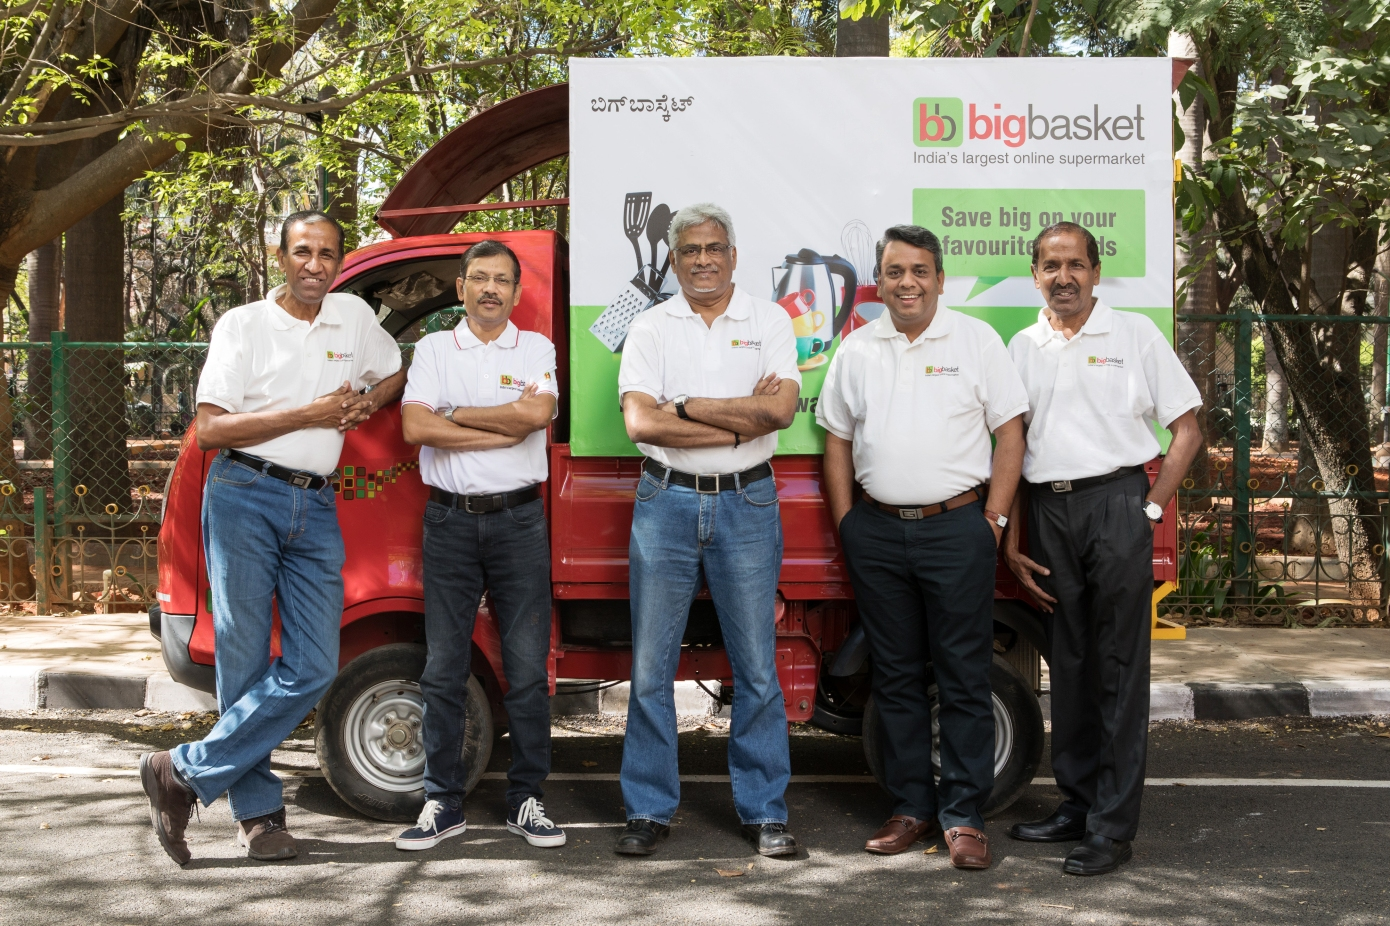 Tata Group reaches agreement to buy majority stake in BigBasket